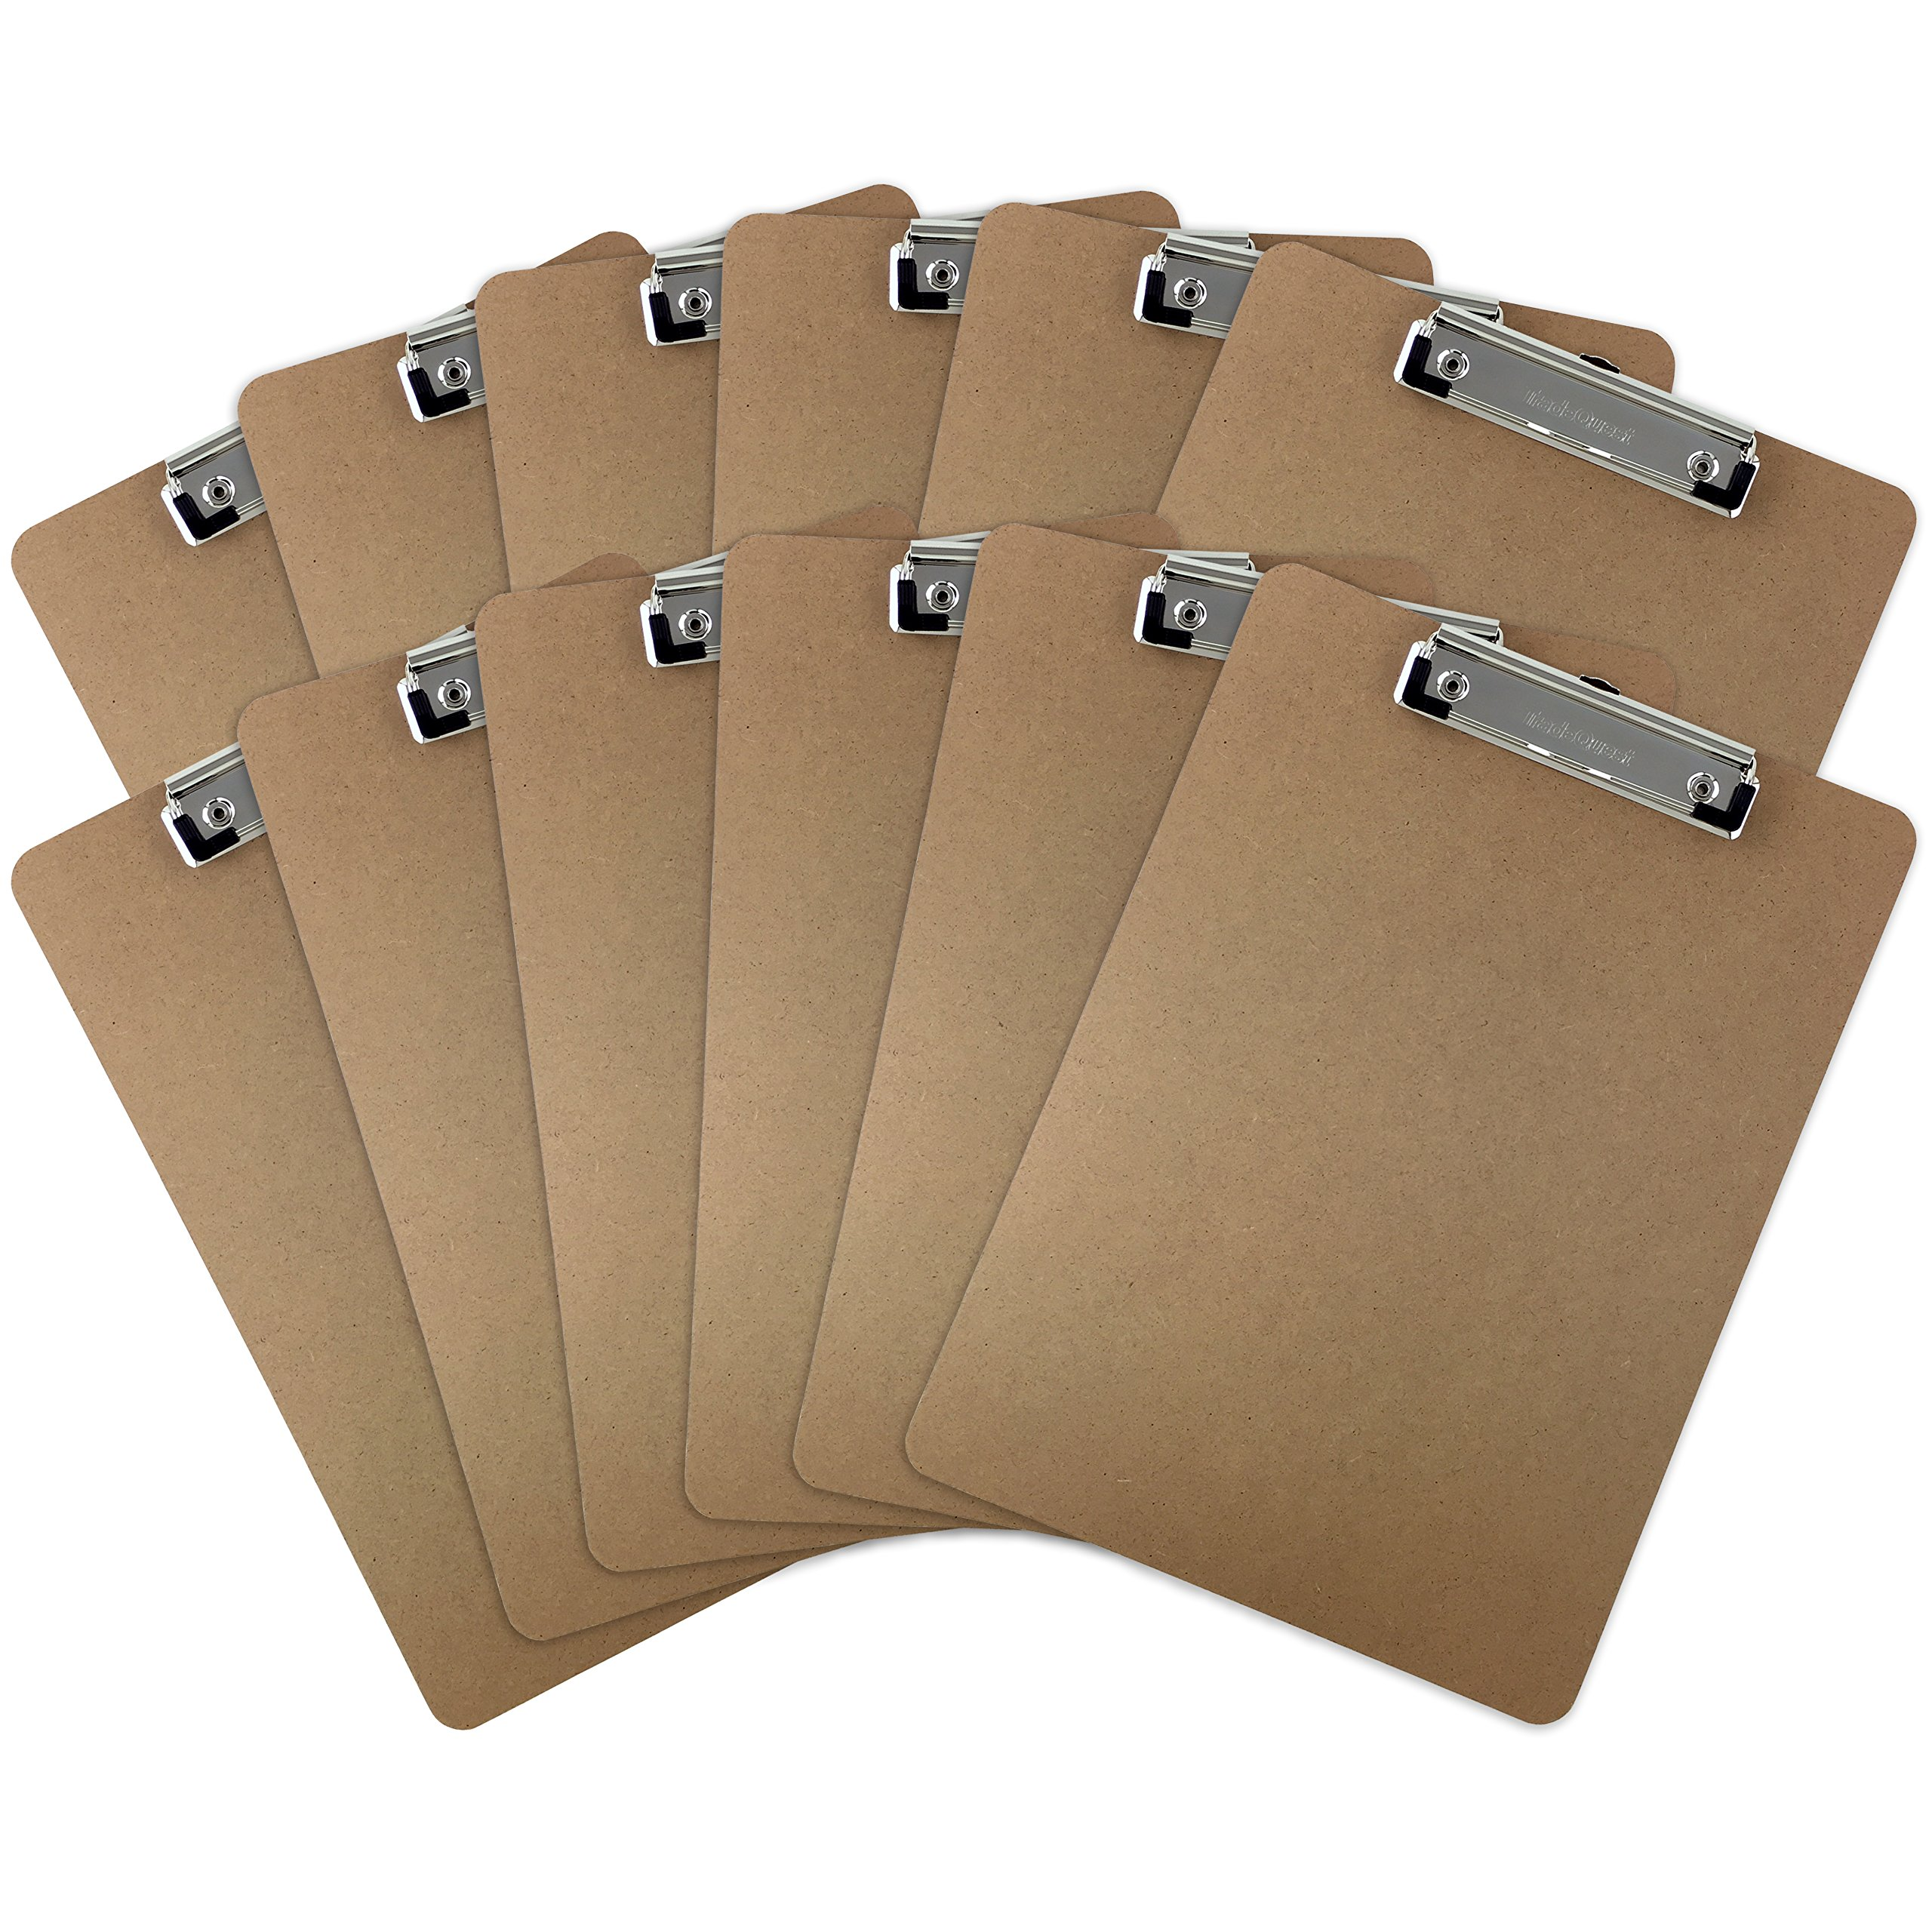 Trade Quest Letter Size Clipboards Low Profile Clip, Hardboard (Pack of 12) by Trade Quest